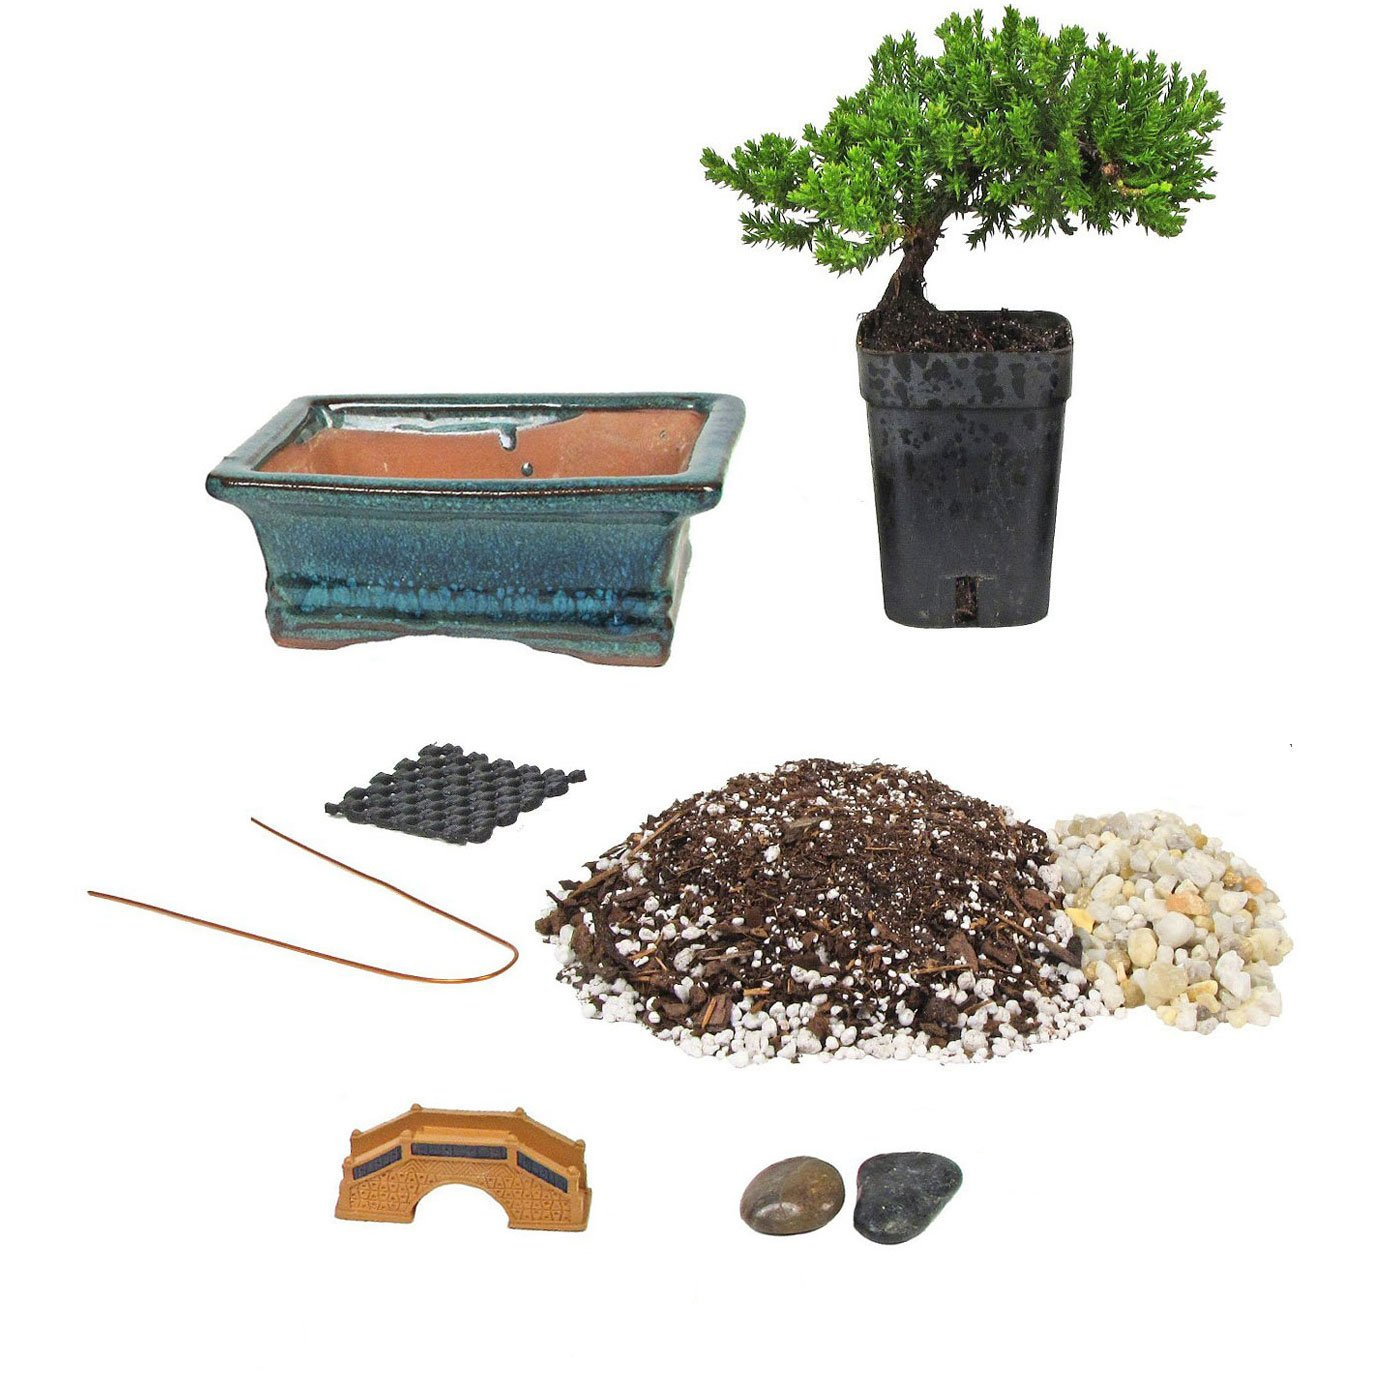 Eve's Bonsai Tree Starter Kit, Complete Do-It-Yourself Kit with 4 Year Old Petite Japanese Juniper